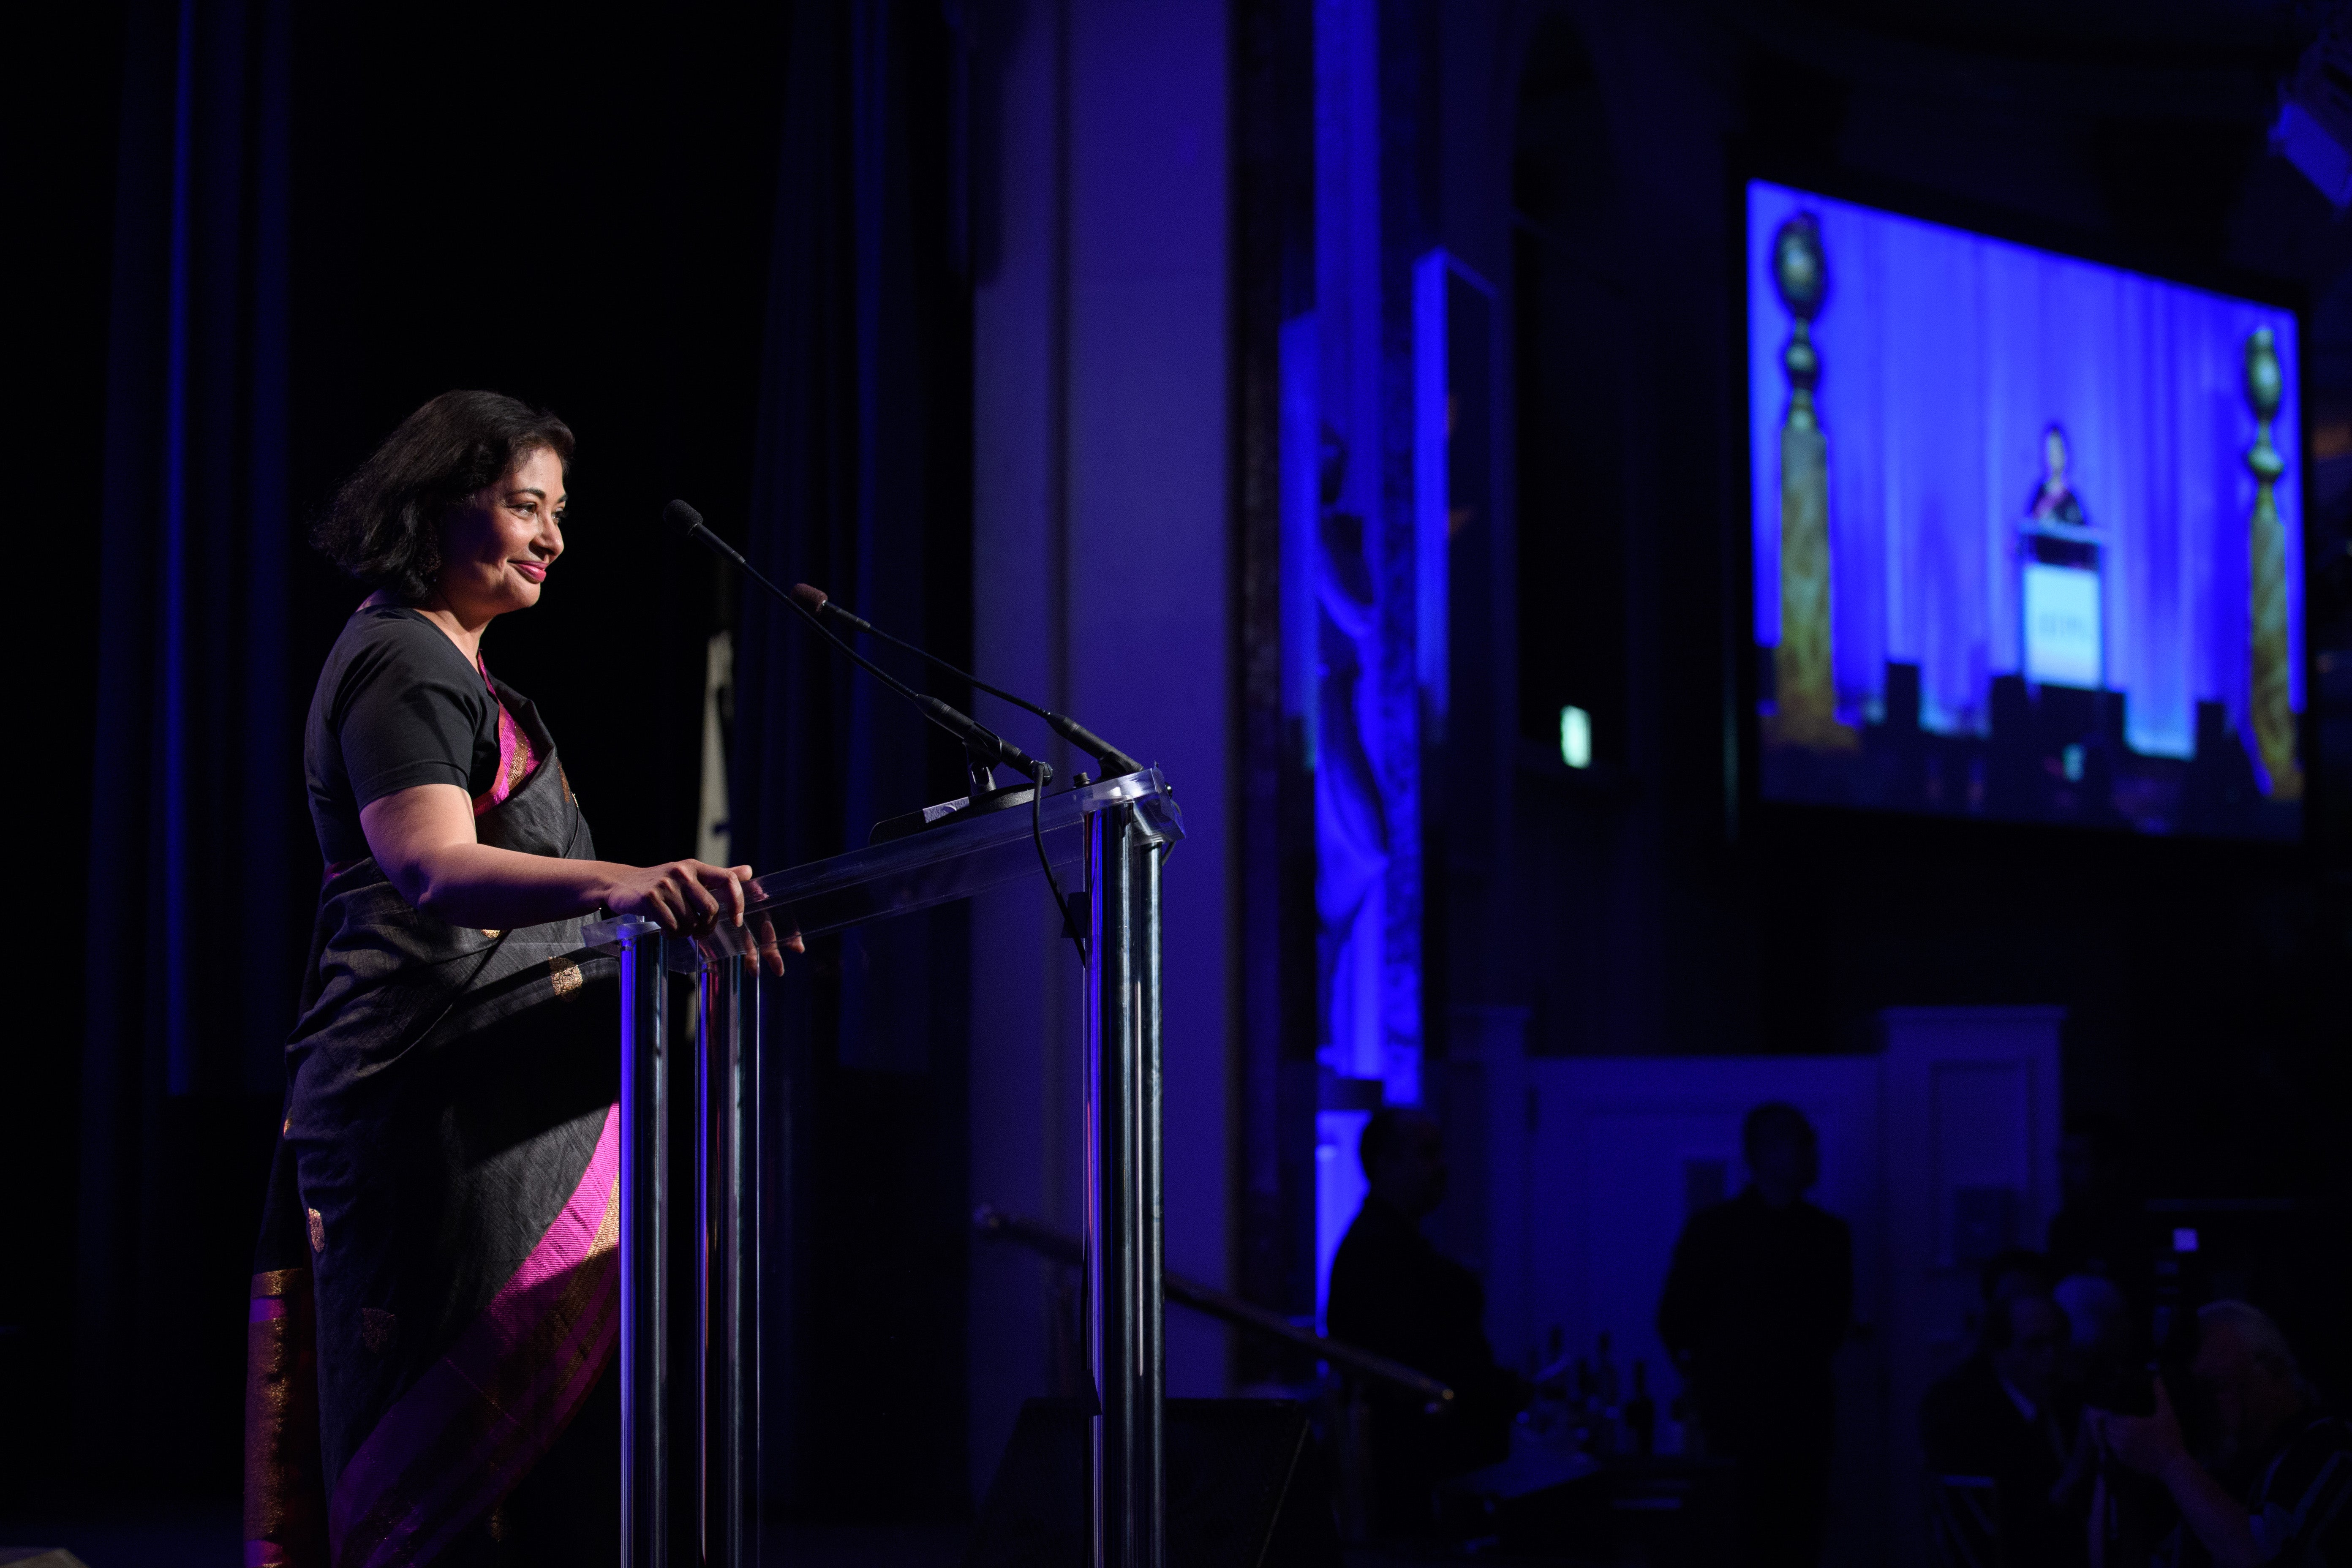 HFPA president Meher Tatna at the 2017 Grants Banquet